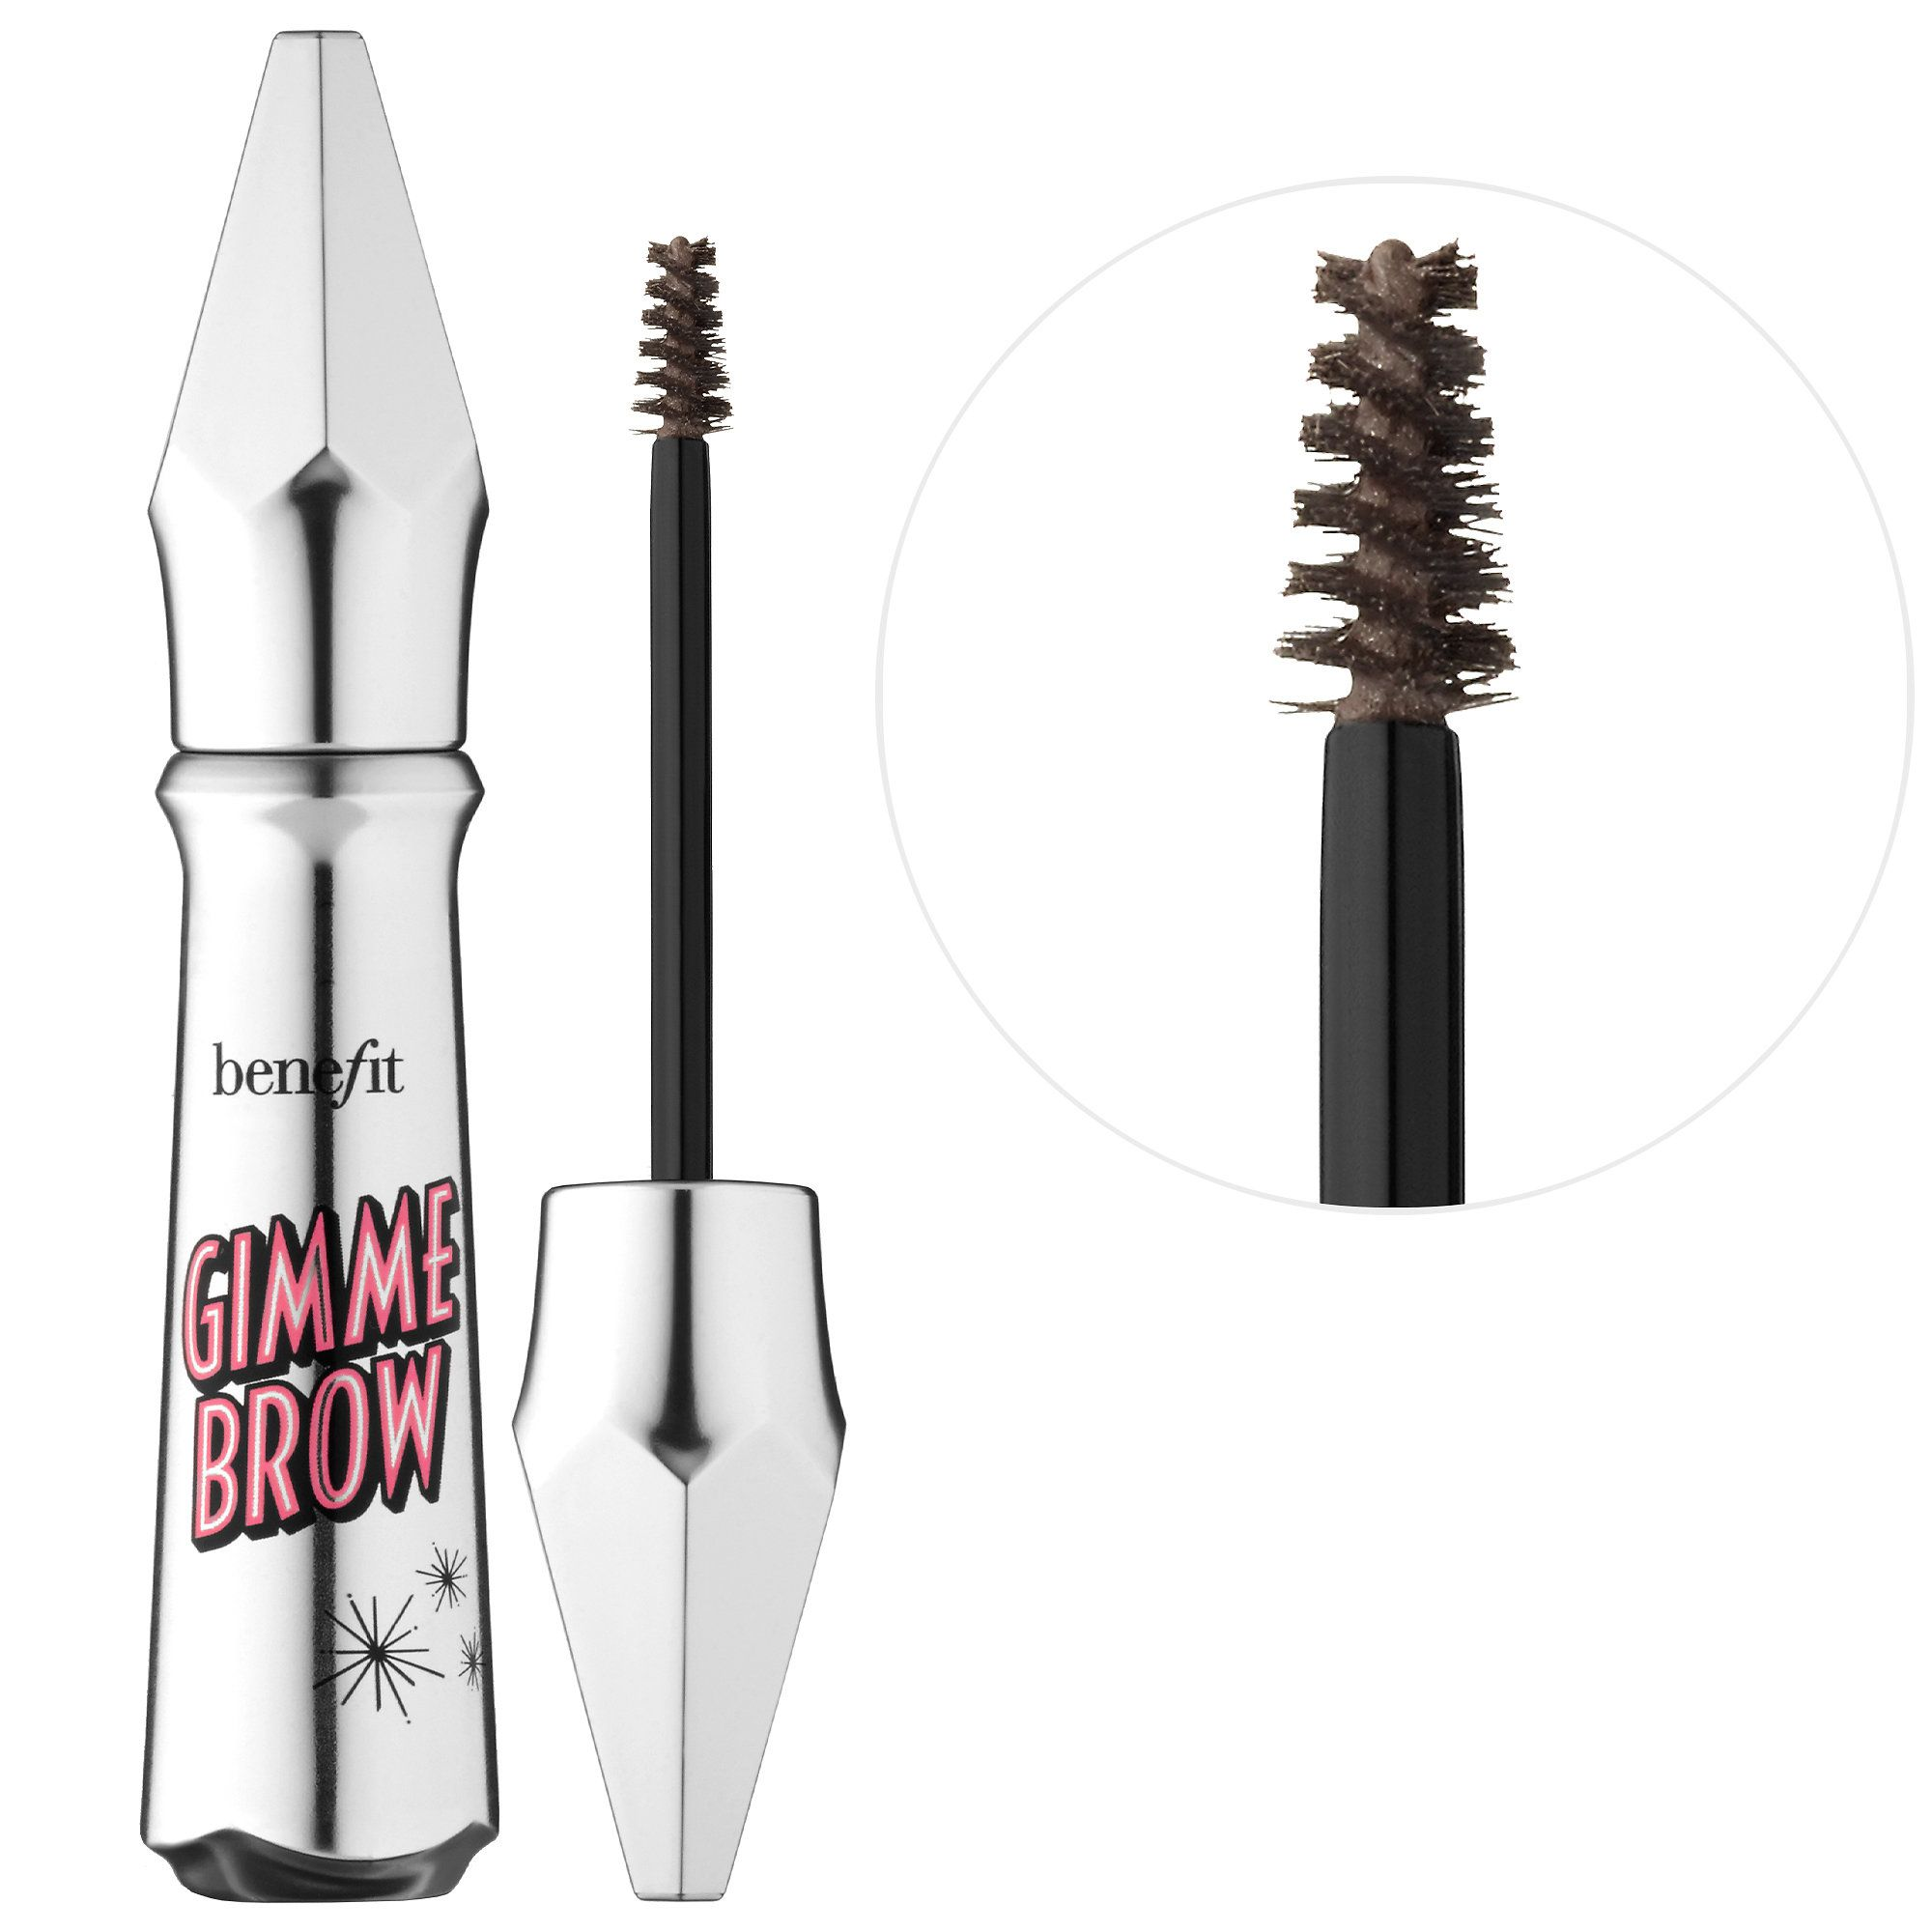 "<p><strong data-redactor-tag=""strong"" data-verified=""redactor""><em data-redactor-tag=""em"" data-verified=""redactor"">$24</em></strong> <a href=""http://www.sephora.com/gimme-brow-P409239?"" target=""_blank"" class=""slide-buy--button"" data-tracking-id=""recirc-text-link"">BUY NOW</a></p><p>If you aren't confident in your ability to create a perfect brow, just&nbsp&#x3B;stick to Benefit's grow gel instead. It's a super easy way to build your brow without needing to have any sort of shading or brush skills. You just brush it upwards on your brows and the&nbsp&#x3B;tiny fibers will&nbsp&#x3B;adhere to your brows,&nbsp&#x3B;giving&nbsp&#x3B;them&nbsp&#x3B;a&nbsp&#x3B;fuller&nbsp&#x3B;look and shape.&nbsp&#x3B;</p>"